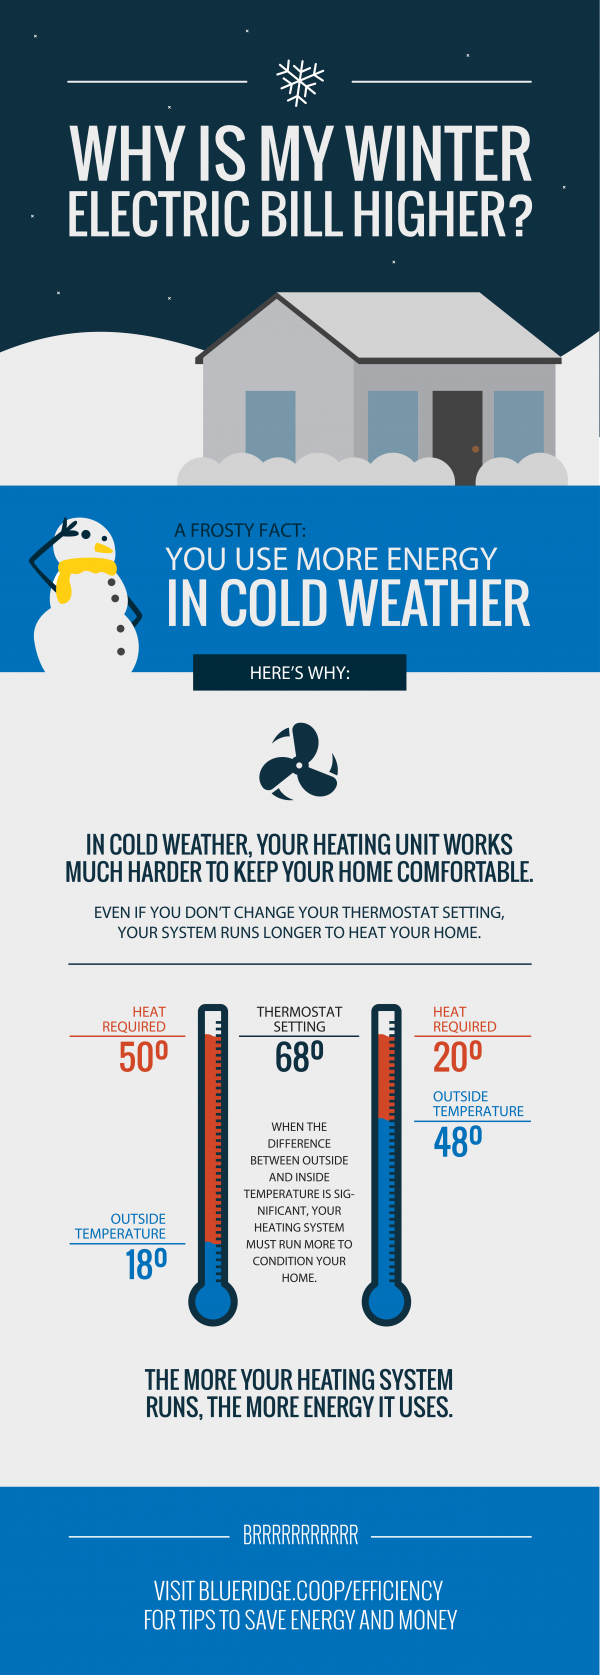 Winter Bill Infographic Blue Ridge Electric Co Op